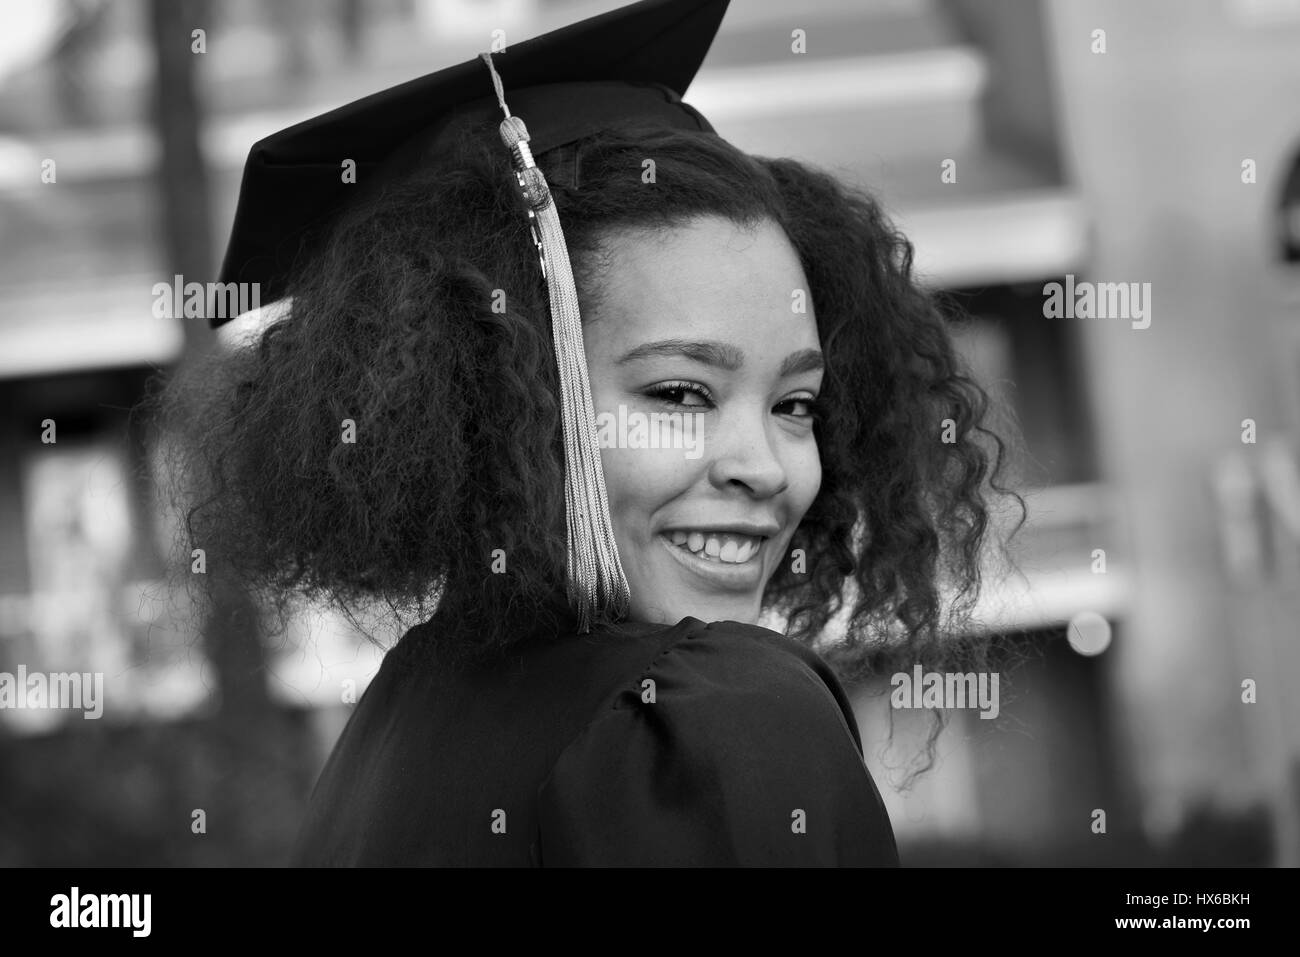 College graduate, business degree, University of Arizona, Tucson, Arizona, USA. - Stock Image